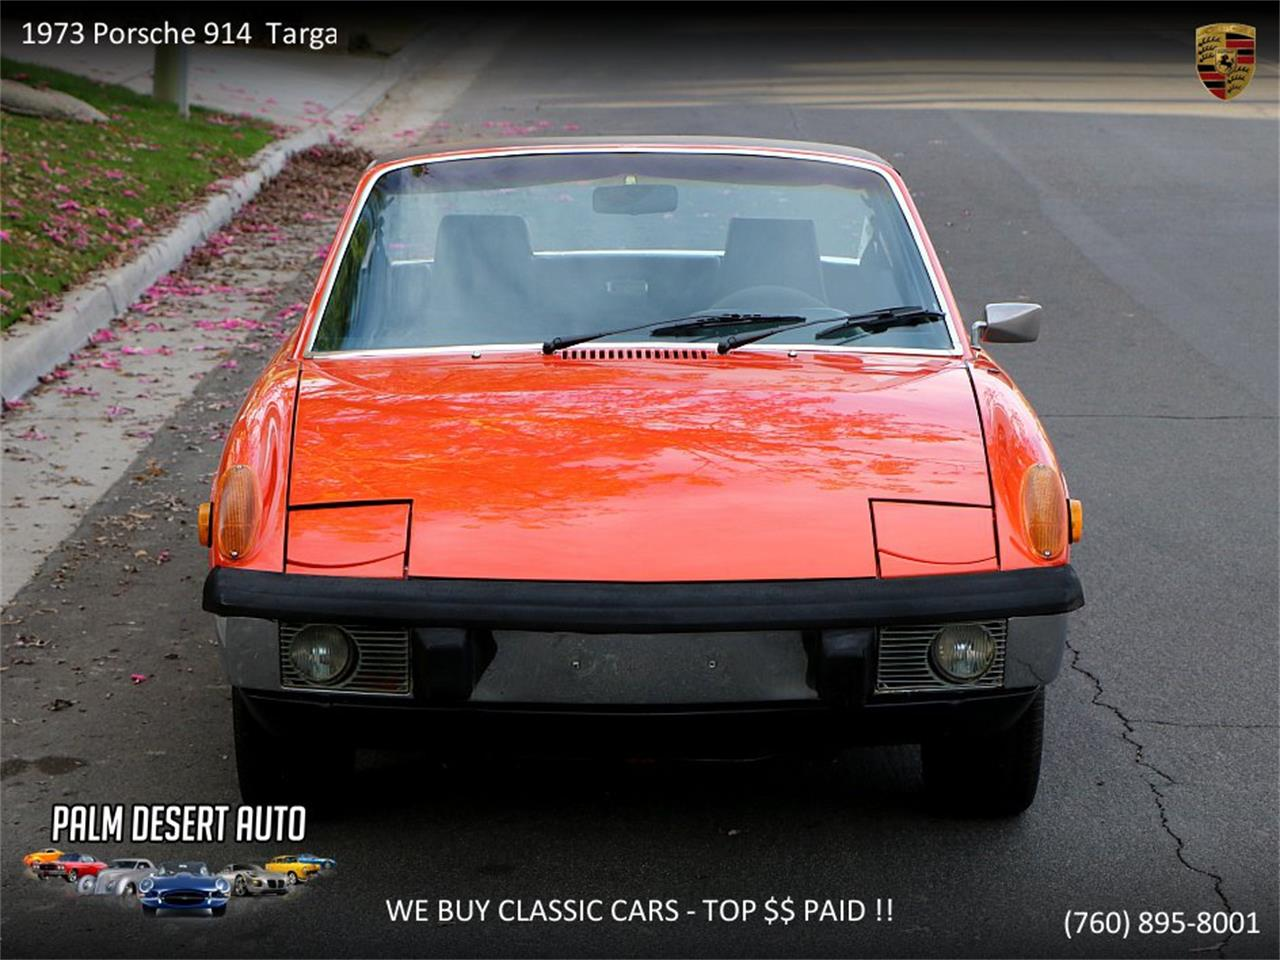 Large Picture of Classic 1973 Porsche 914 located in Palm Desert  California - $17,450.00 - PFF8